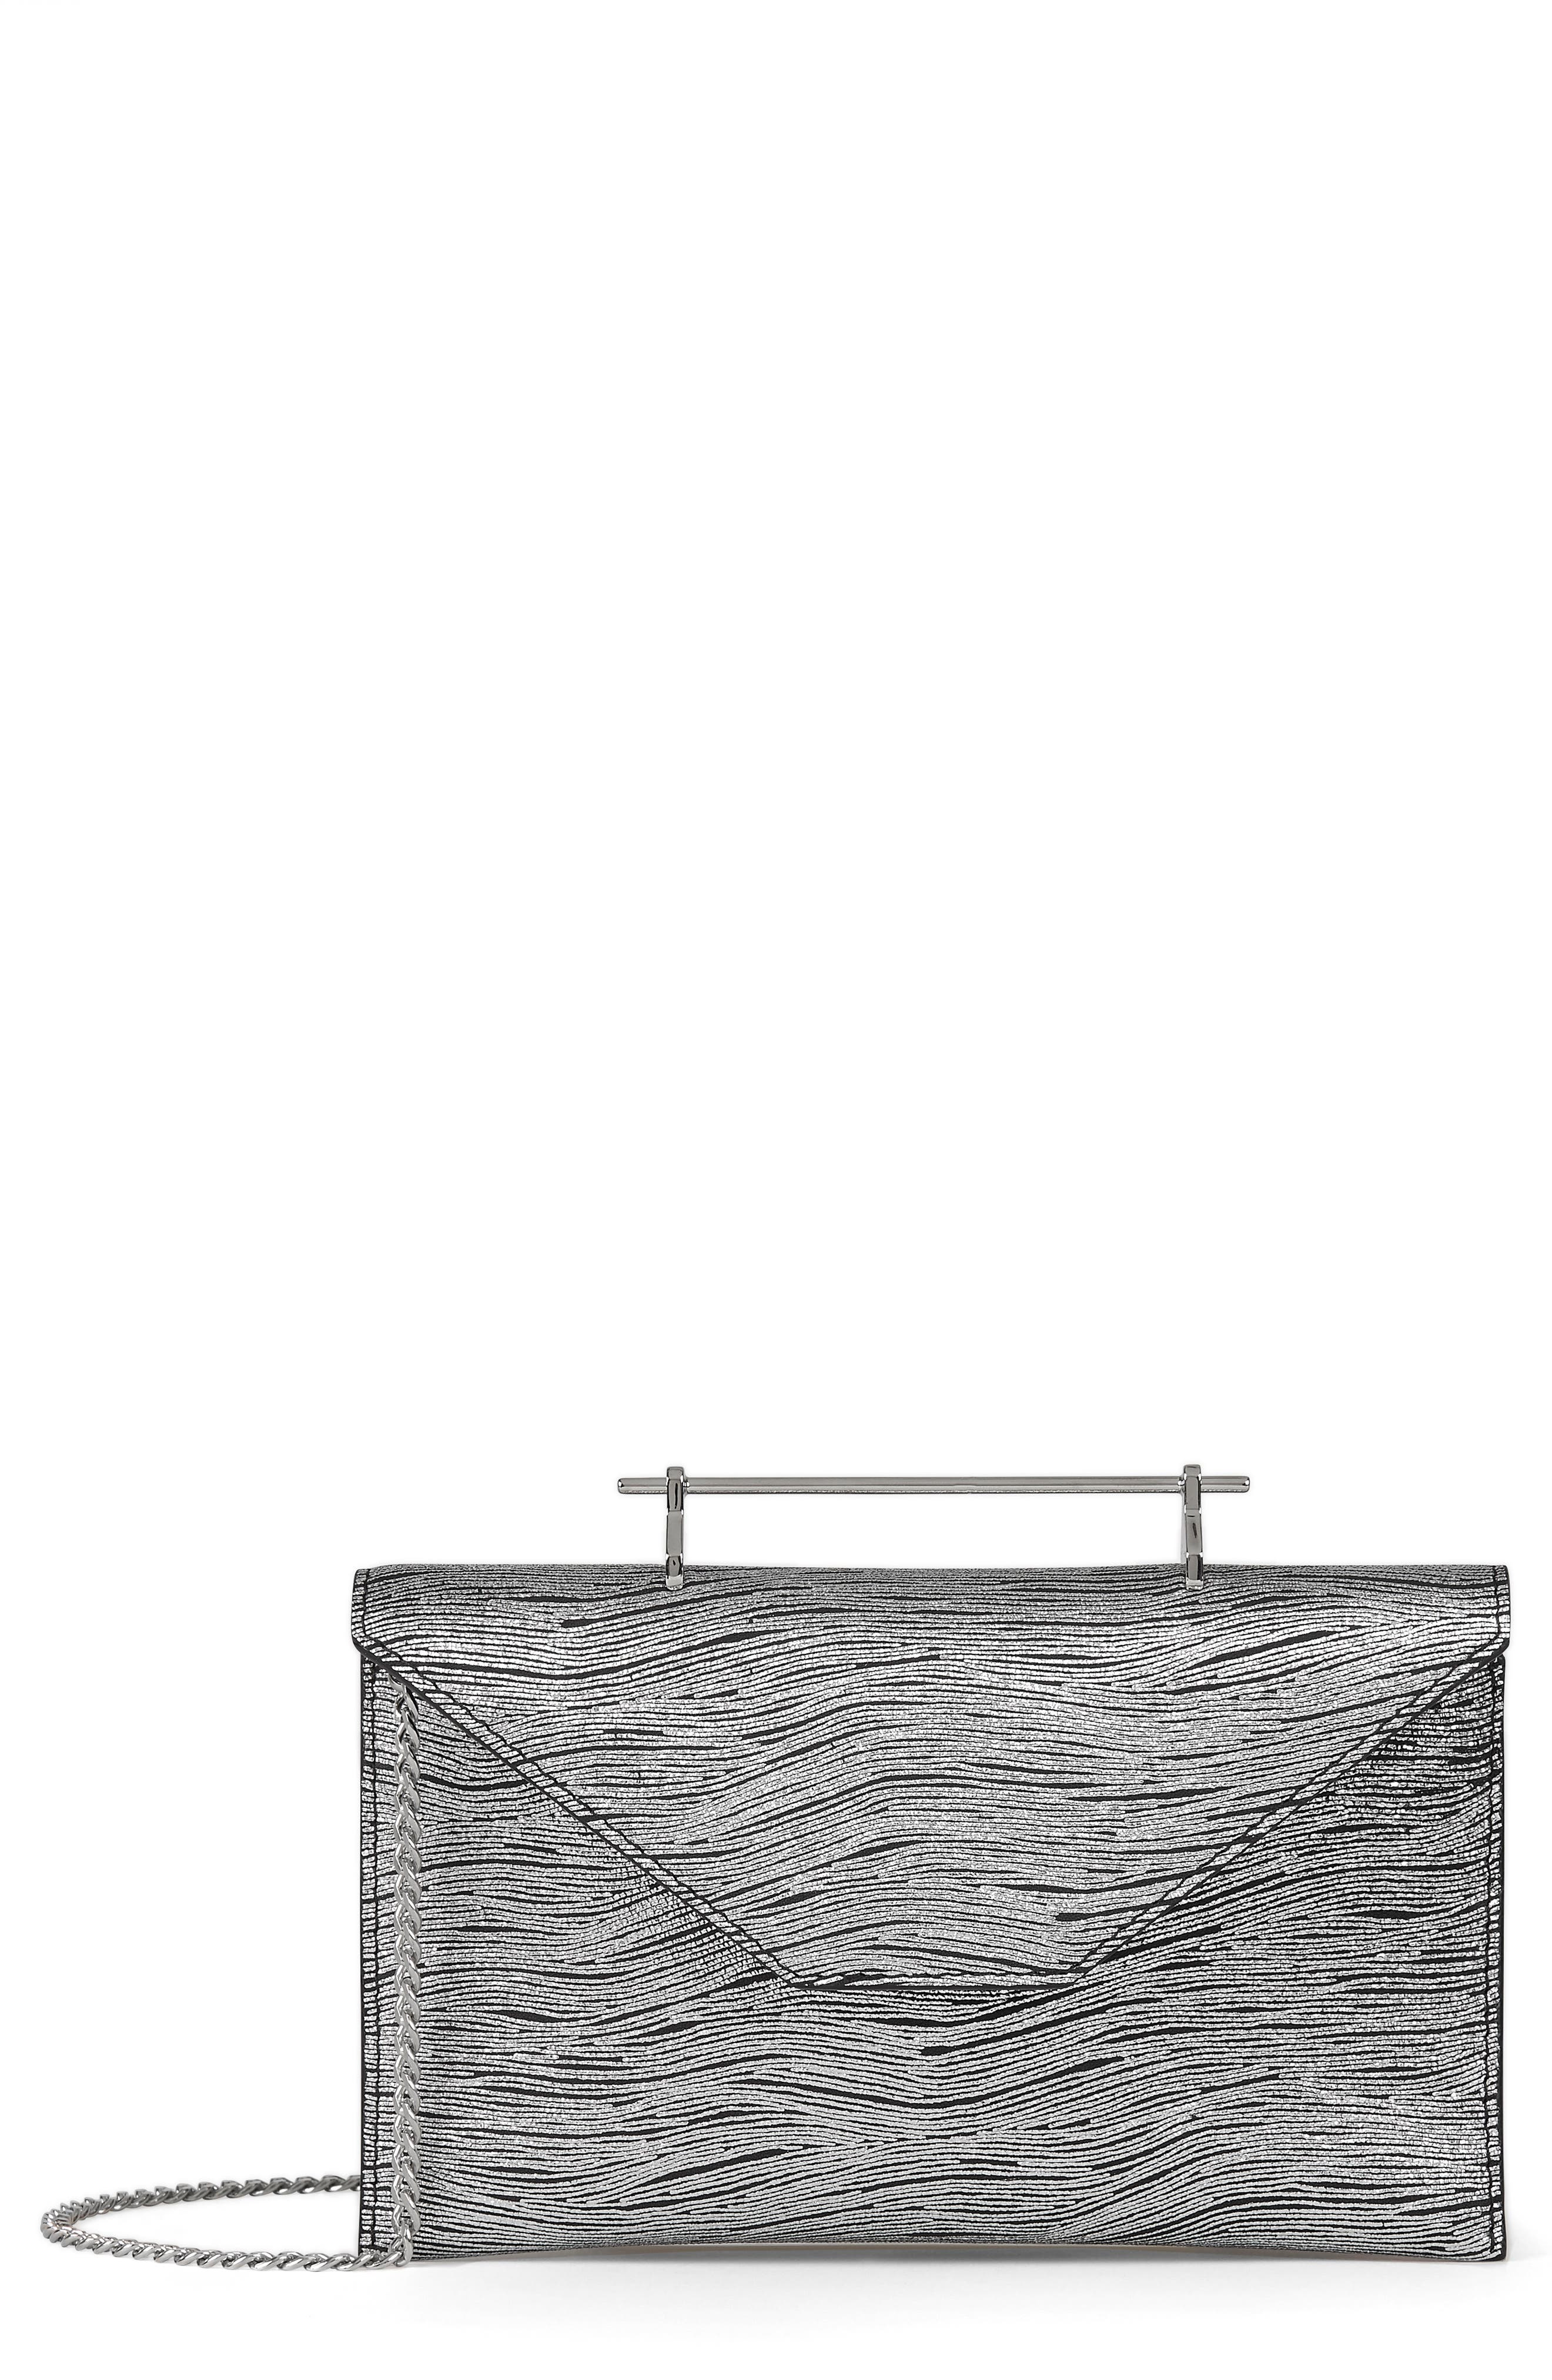 M2Malletier Annabelle Metallic Calfskin Leather Clutch